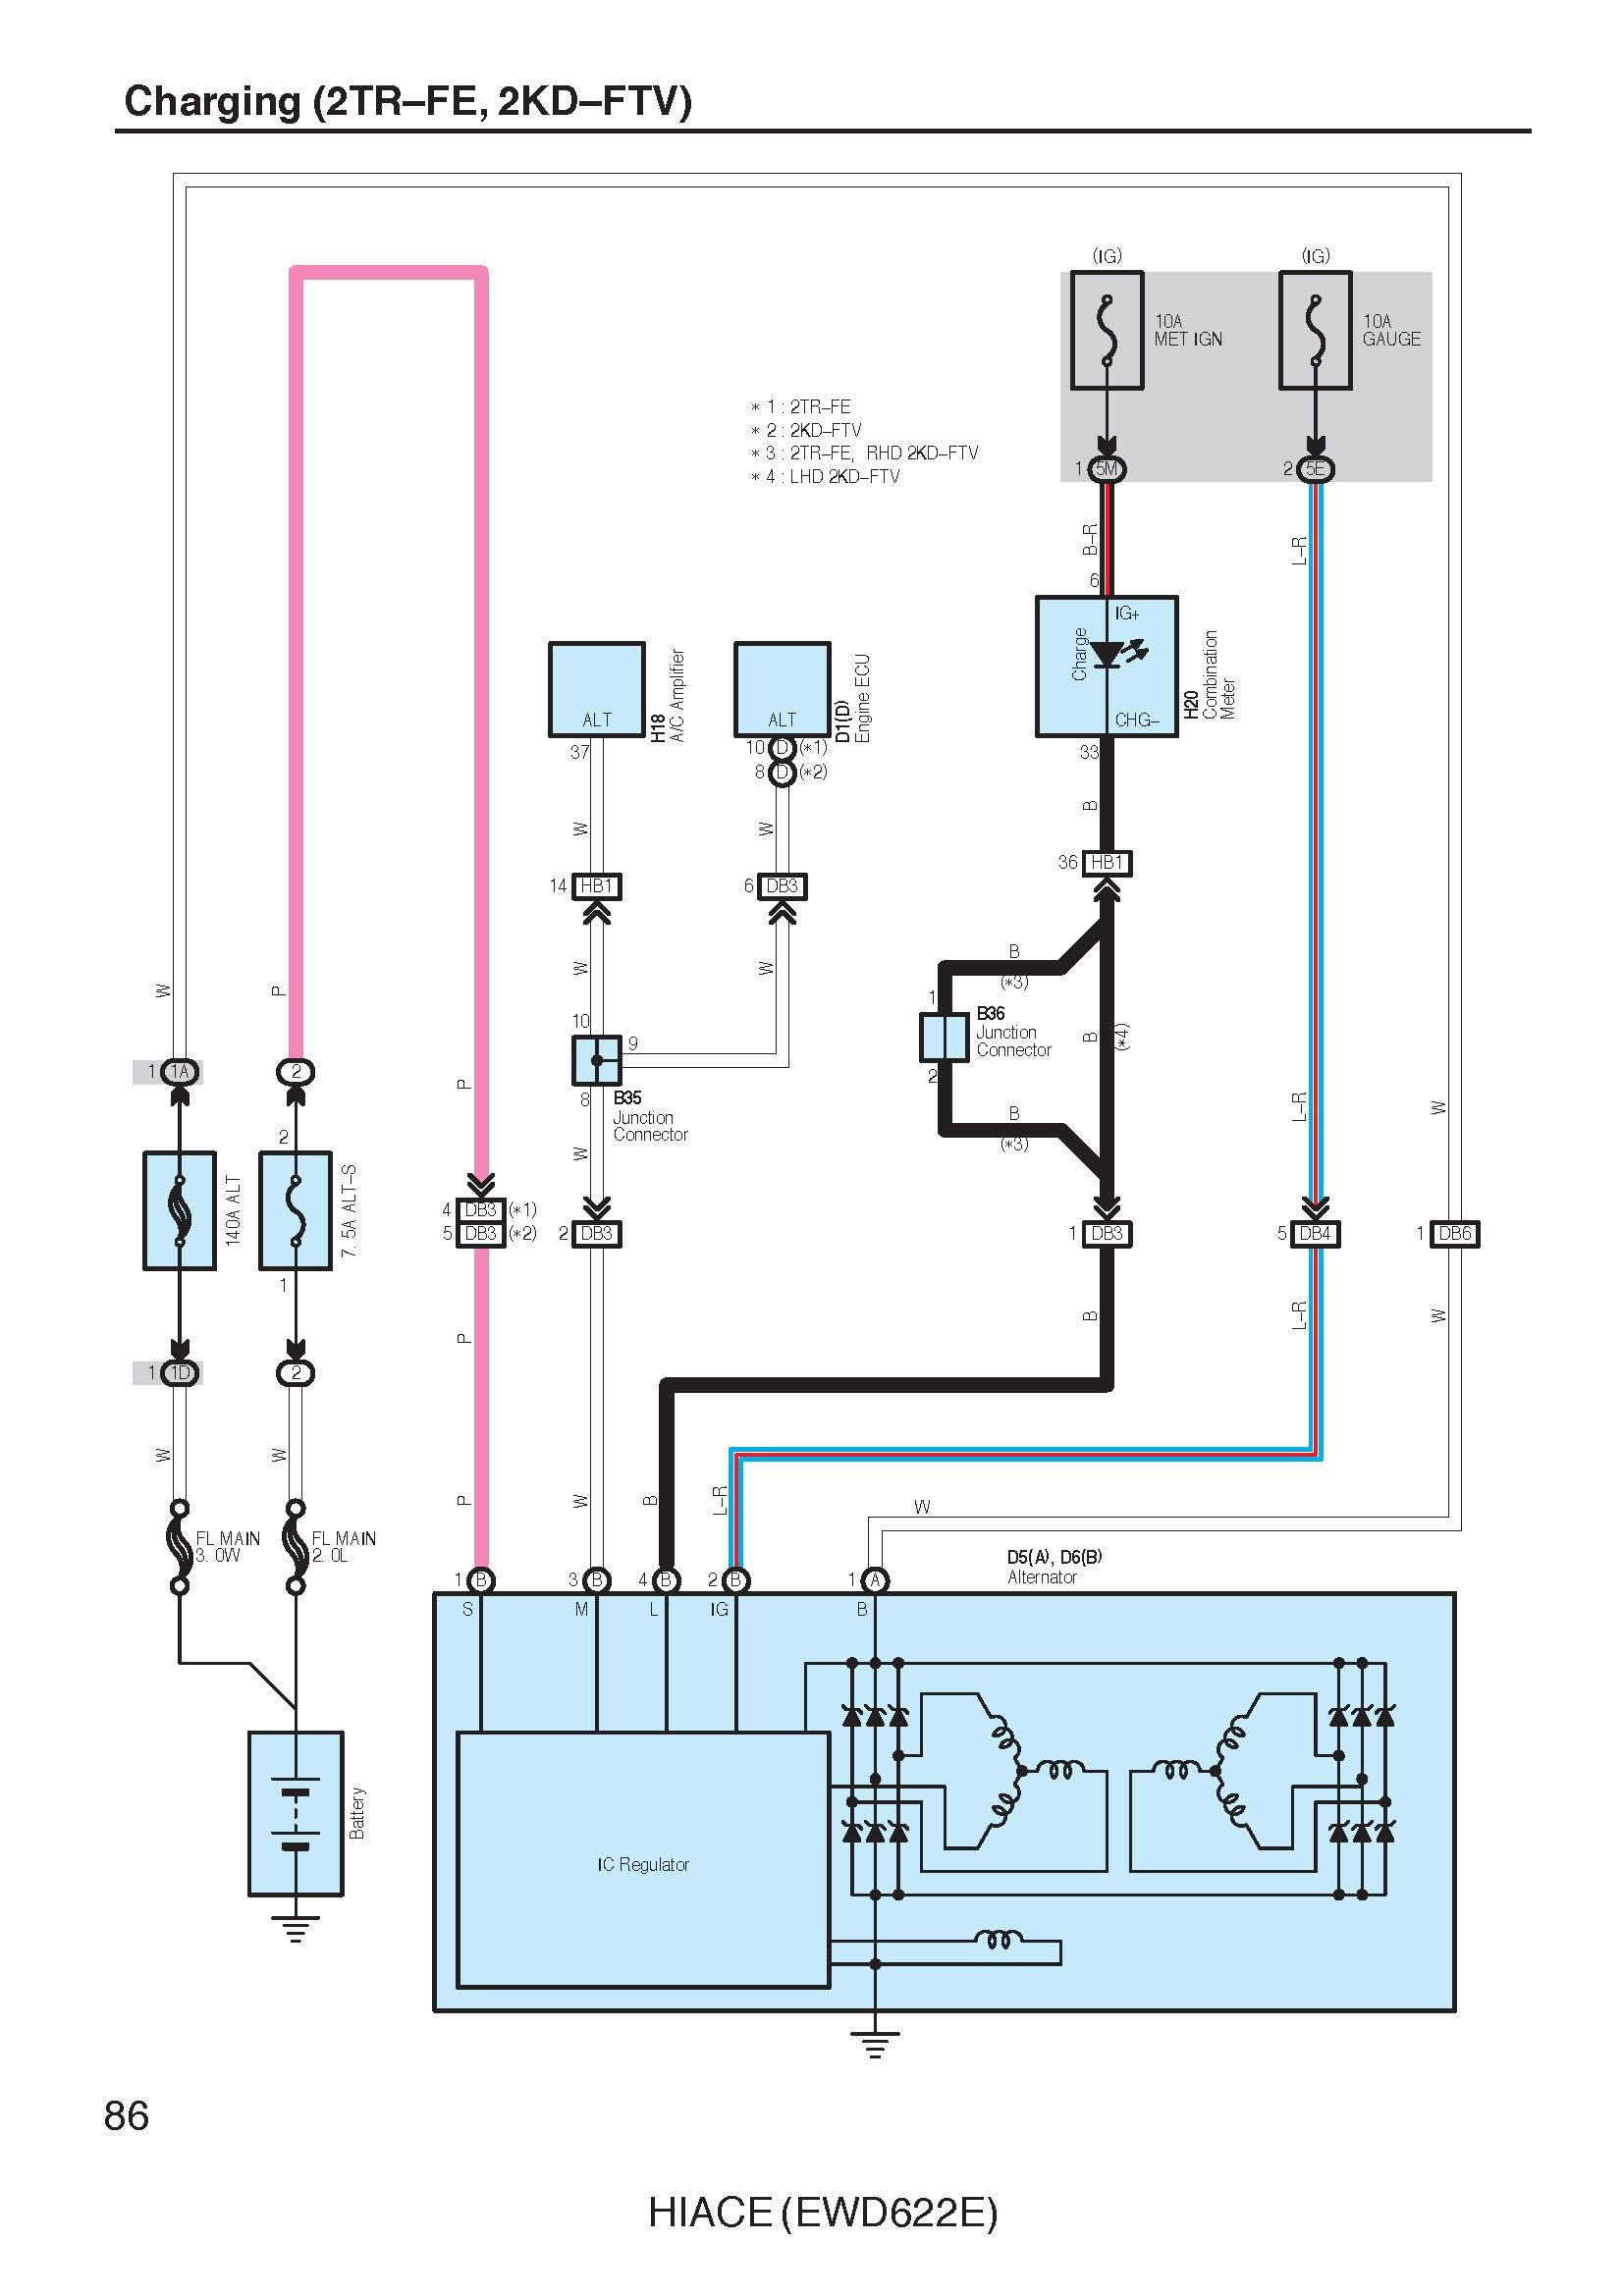 wiring diagrams pdf wiring diagram for you 2006 toyota hiace full original and coloured electrical wiring [ 1653 x 2339 Pixel ]